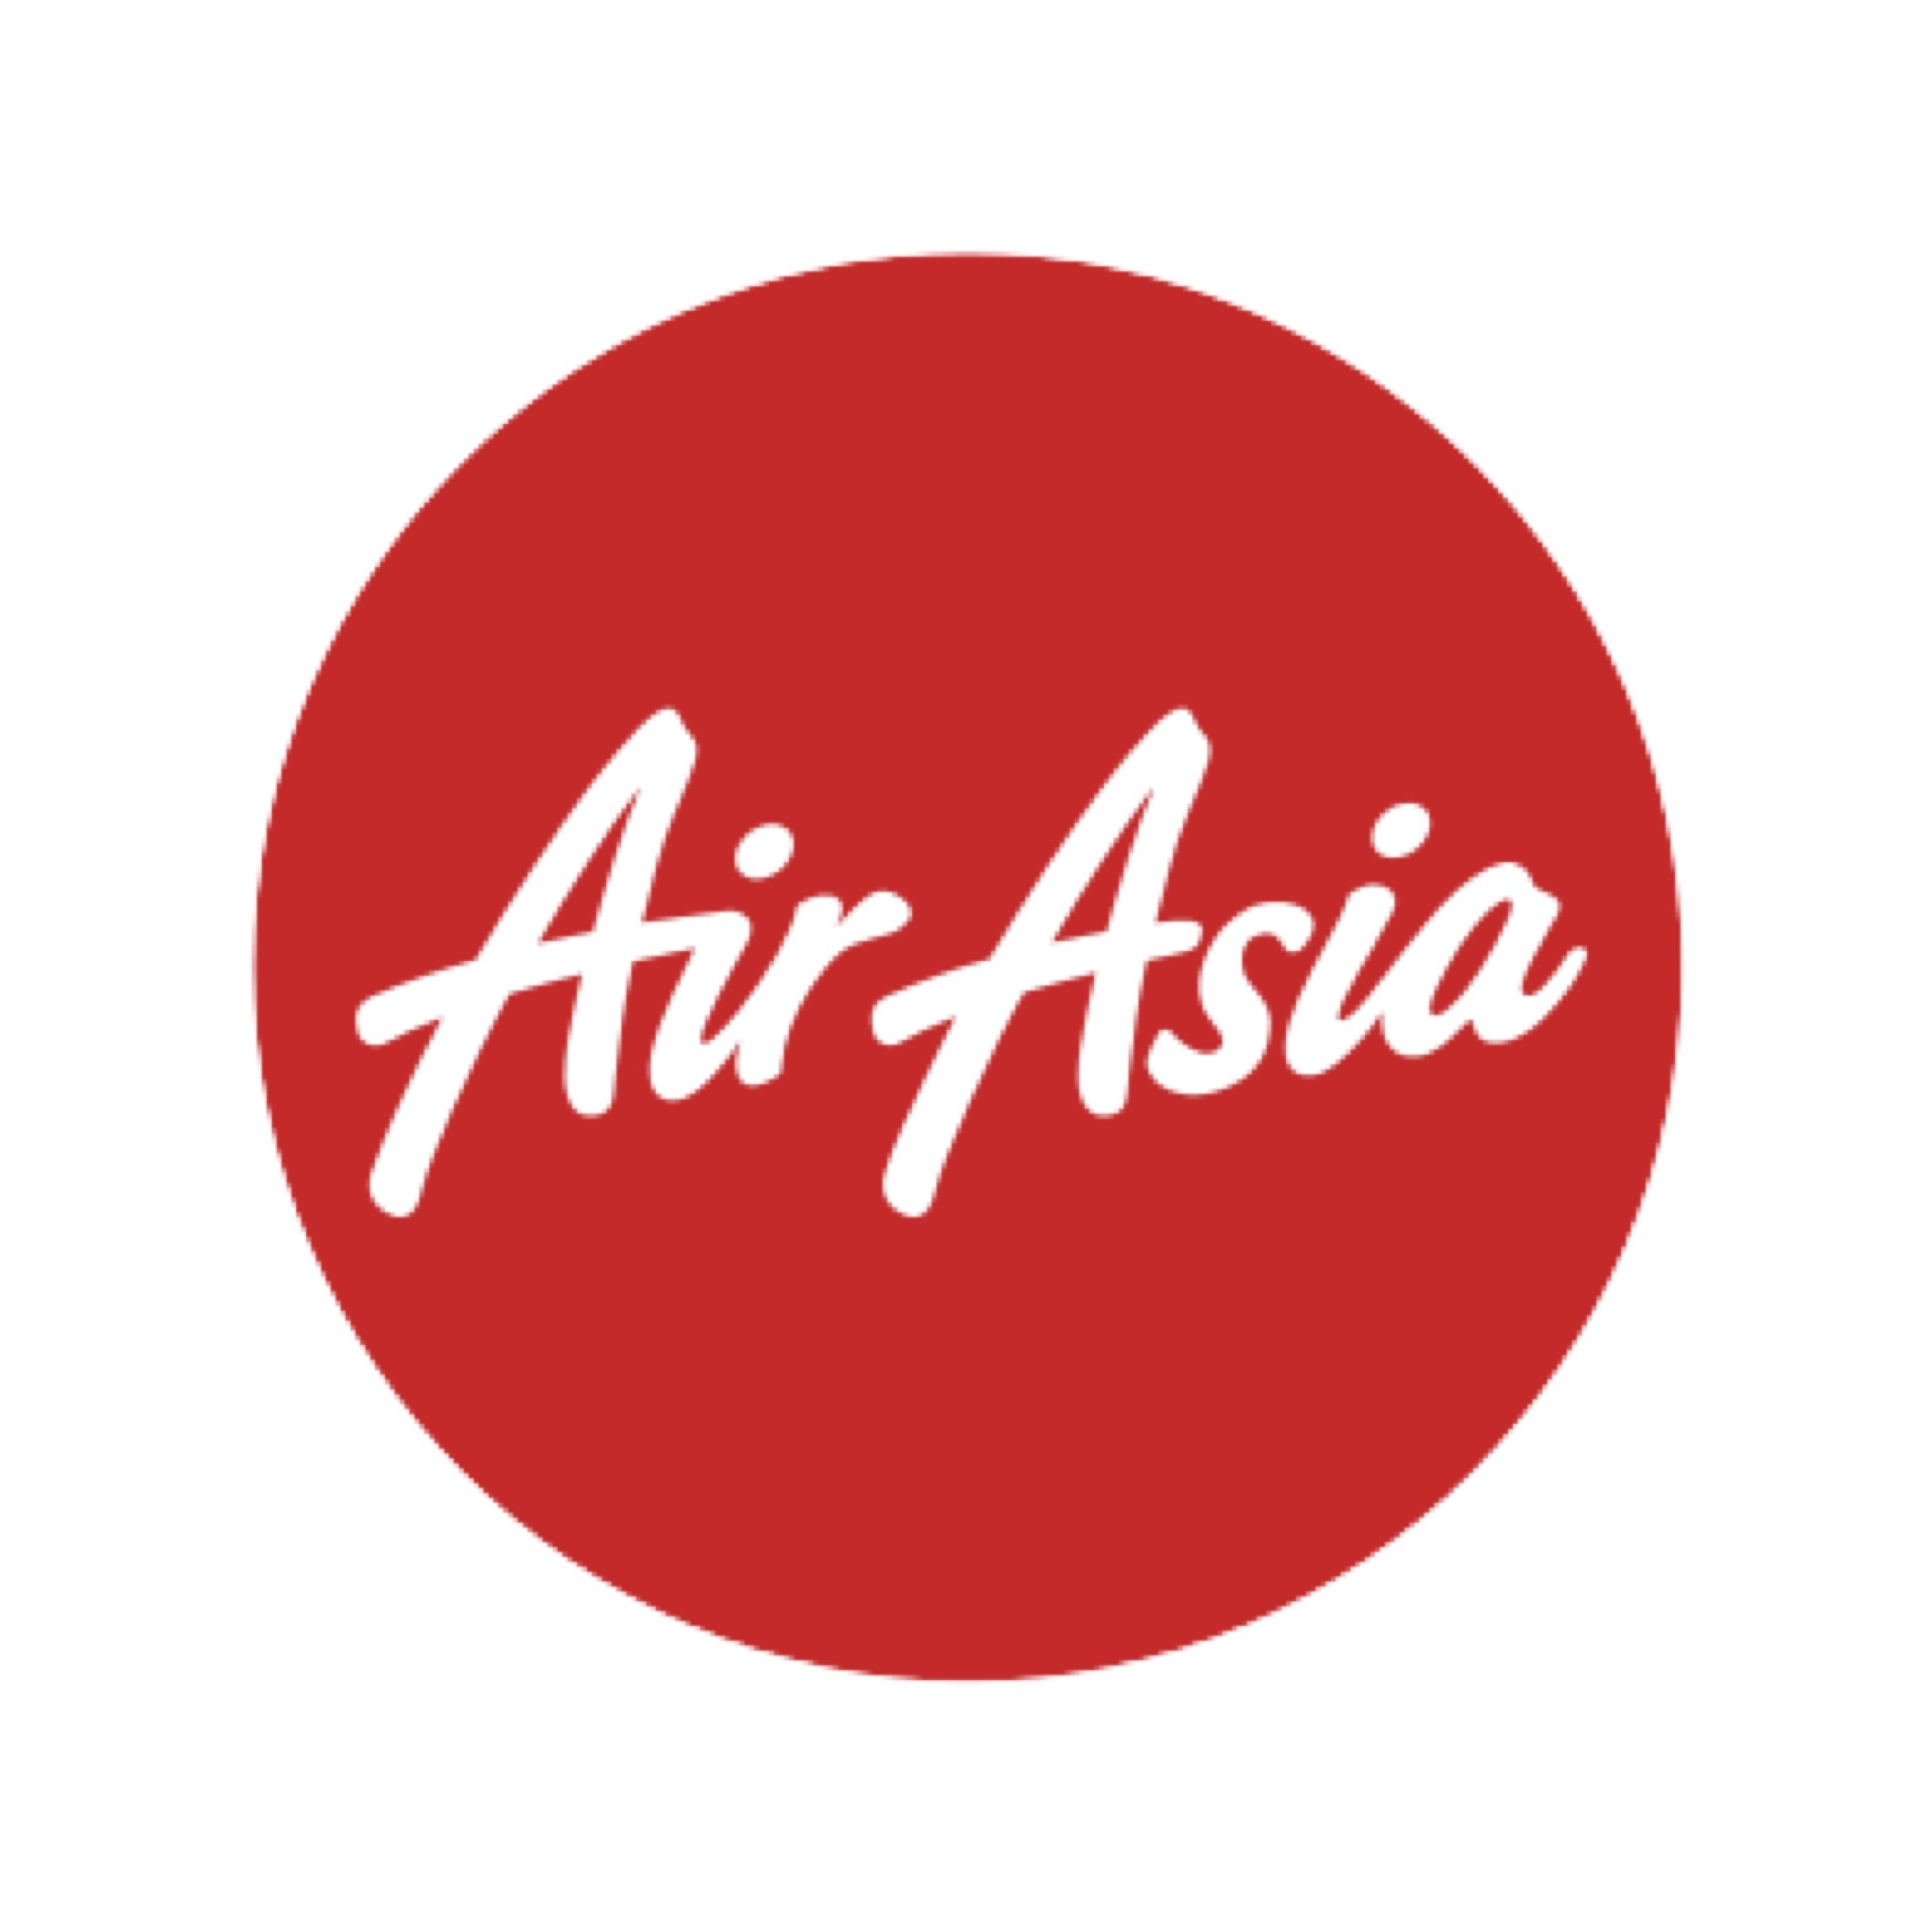 The speaker works for AirAsia